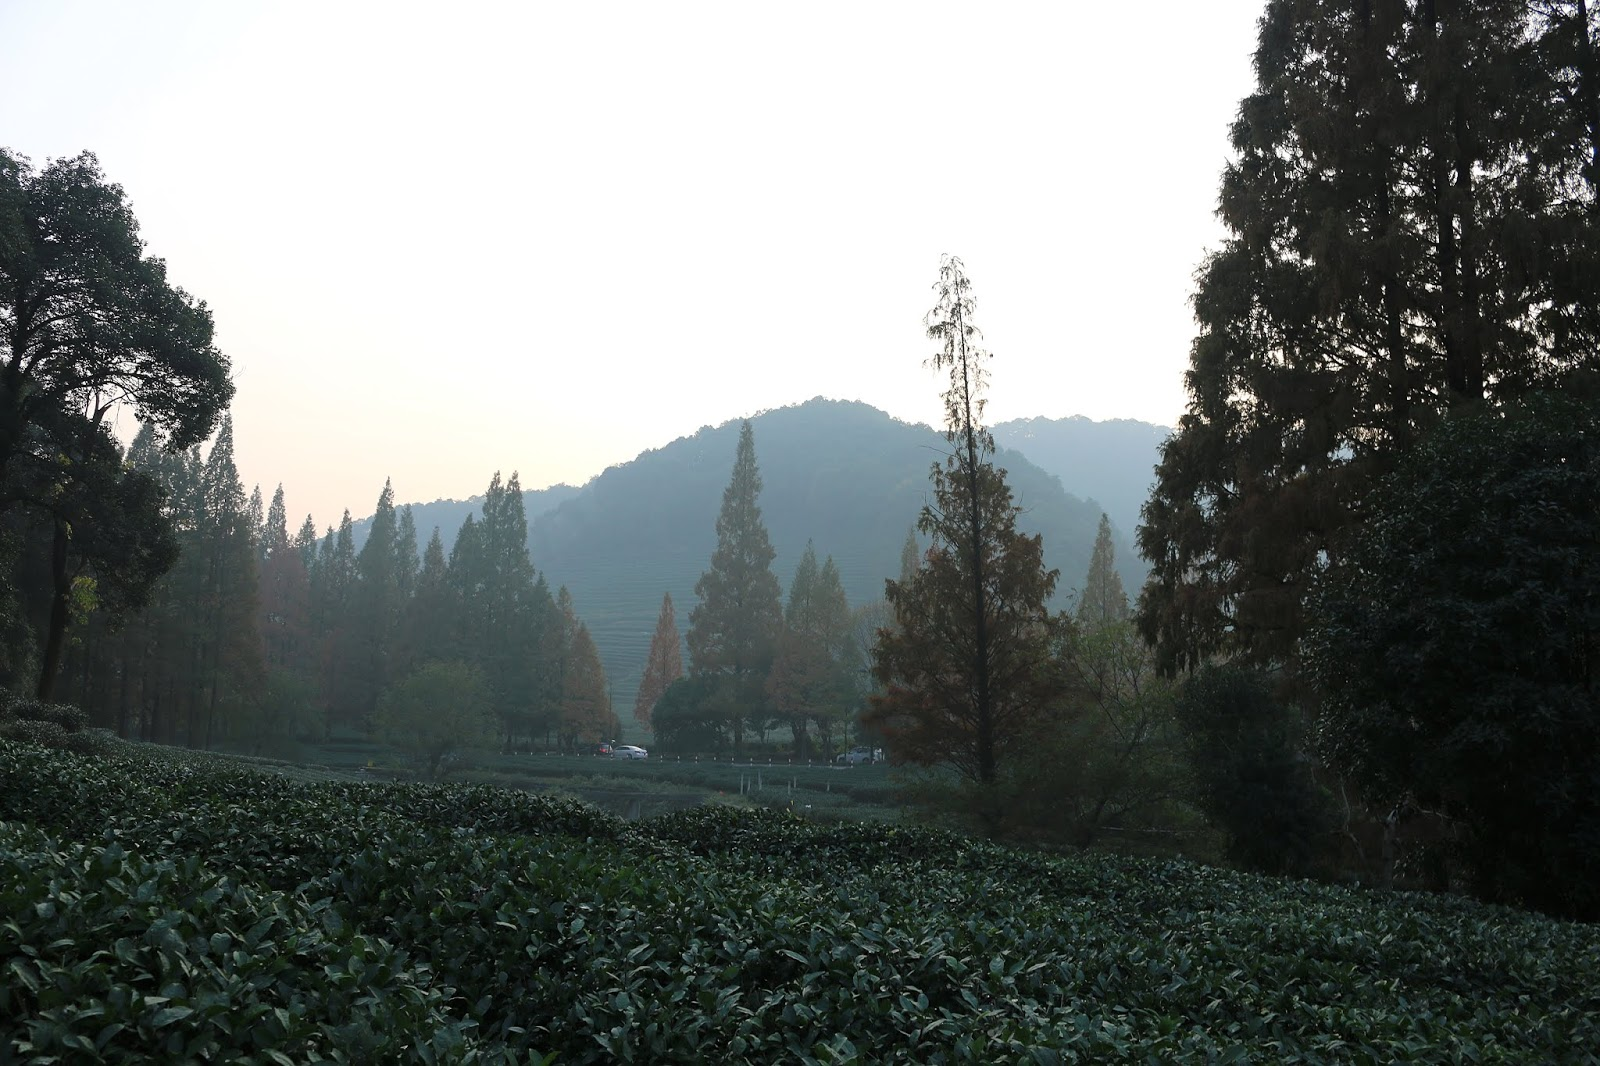 Dragon Well Green Tea Plantation Hangzhou